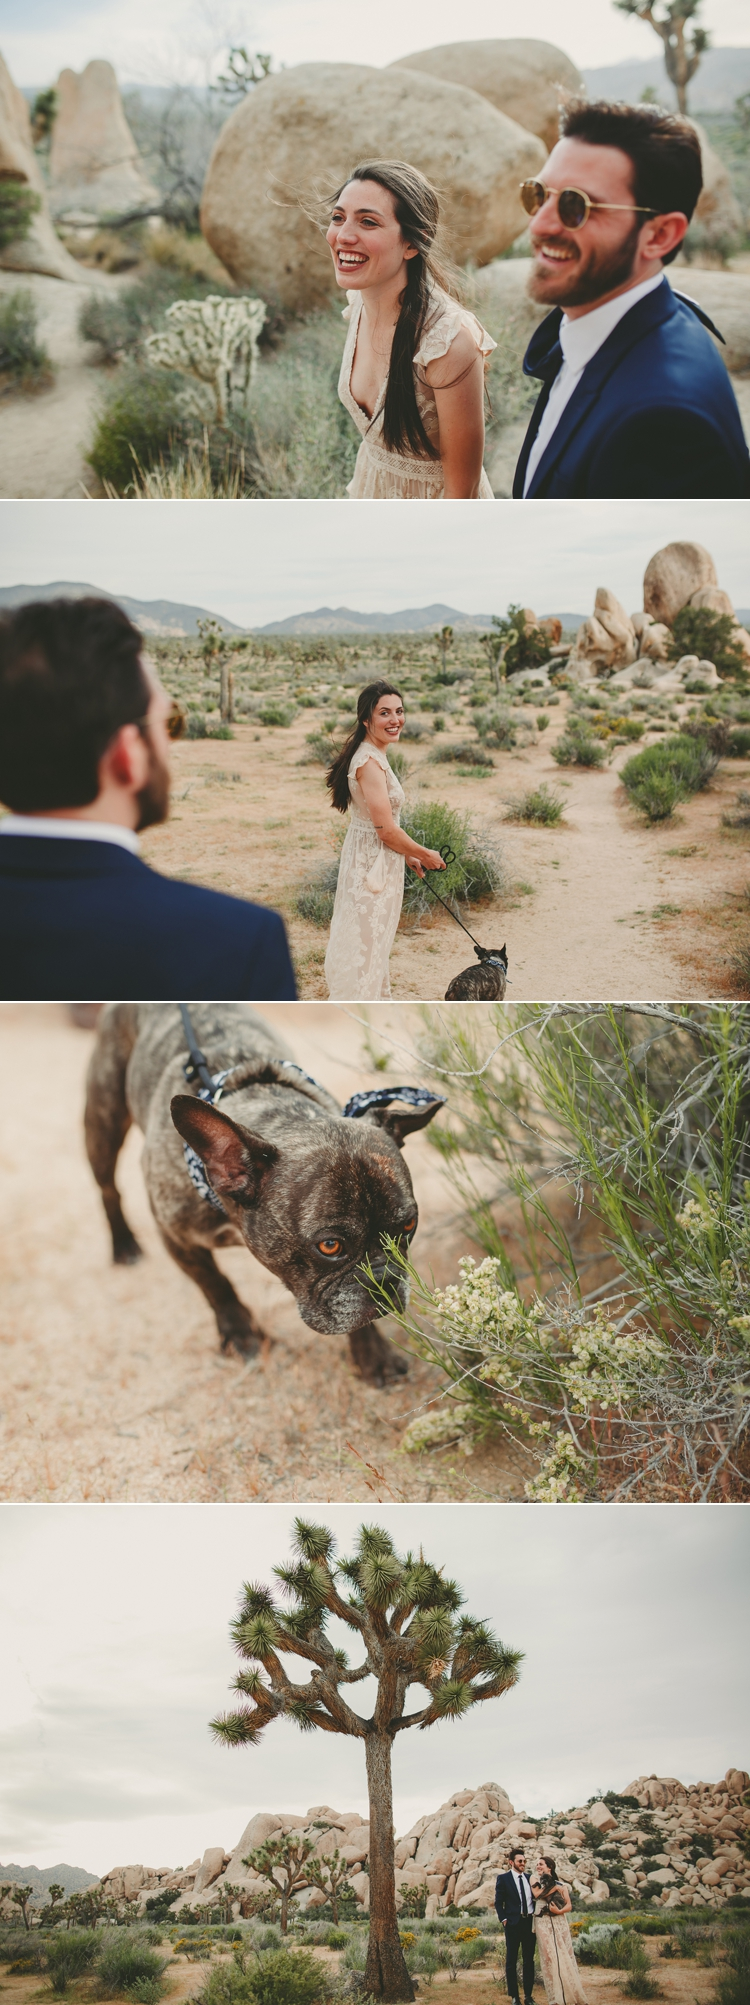 Elopement Photos In Joshua Tree